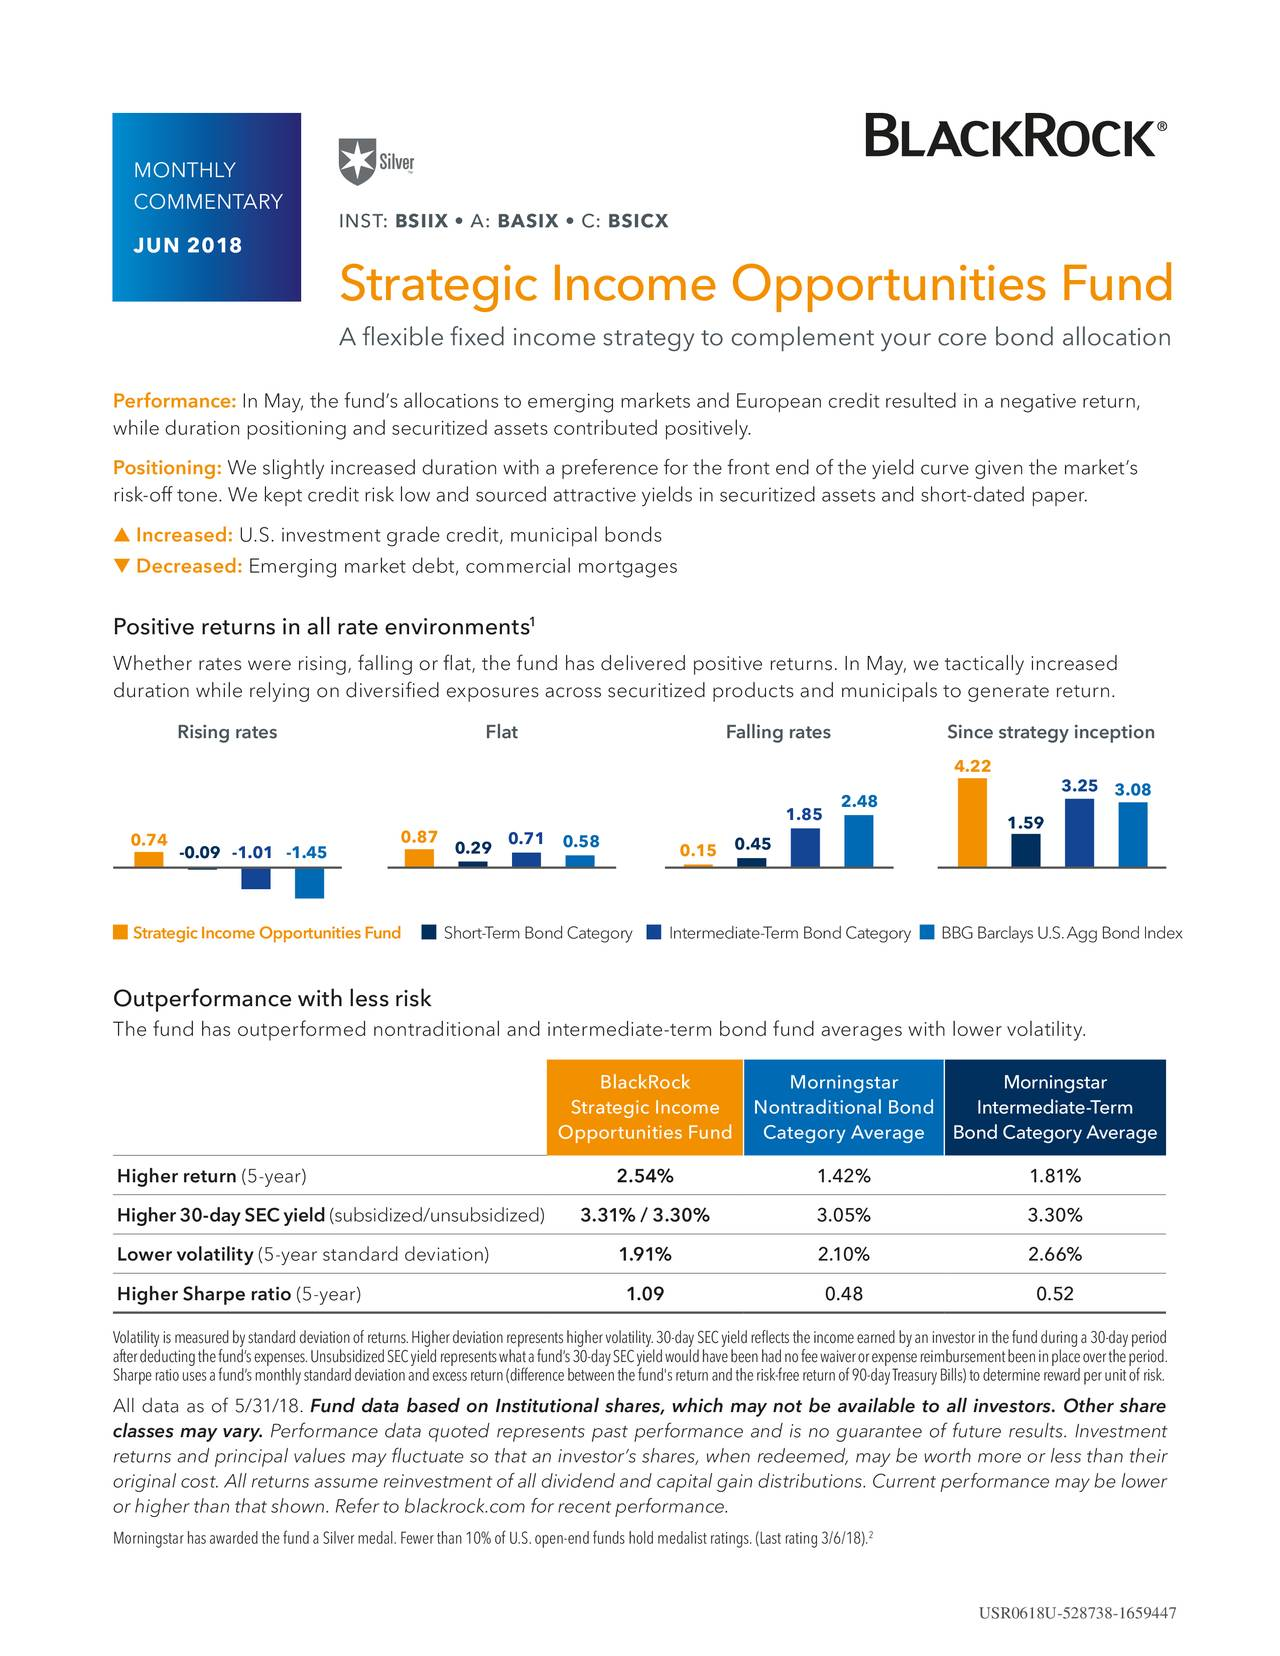 COMMENTARY INST: BSIIX • A: BASIX • C: BSICX JUN 2018 Strategic Income Opportunities Fund A flexible fixed income strategy to complement your core bond allocation Performance: In May, the fund's allocations to emerging markets and European credit resulted in a negative return, while duration positioning and securitized assets contributed positively. Positioning: We slightly increased duration with a preference for the front end of the yield curve given the market's risk-off tone. We kept credit risk low and sourced attractive yields in securitized assets and short-dated paper. ▲ Increased: U.S. investment grade credit, municipal bonds ▼ Decreased: Emerging market debt, commercial mortgages 1 Positive returns in all rate environments Whether rates were rising, falling or flat, the fund has delivered positive returns. In May, we tactically increased duration while relying on diversified exposures across securitized products and municipals to generate return. Rising rates Flat Falling rates Since strategy inception 4.22 3.25 3.08 2.48 1.85 1.59 0.74 0.87 0.29 0.71 0.58 0.15 0.45 -0.09 -1.01 -1.45 Strategic Income Opporytunities FuShort-Term Bond CategoryIntermediate-Term Bond Category BBG Barclays U.S.Agg Bond Index Outperformance with less risk The fund has outperformed nontraditional and intermediate-term bond fund averages with lower volatility. BlackRock Morningstar Morningstar Strategic Income Nontraditional Bond Intermediate-Term Opportunities Fund Category Average Bond Category Average Higher return (5-year) 2.54% 1.42% 1.81% Higher 30-day SEC yield (subsidized/unsubsidized) 3.31% / 3.30% 3.05% 3.30% Lower volatility (5-year standard deviation) 1.91% 2.10% 2.66% Higher Sharpe ratio (5-year) 1.09 0.48 0.52 Volatilityismeasuredbystandarddeviationof returns.Higherdeviationrepresentshighervolatility.30-daySECyieldreflectstheincomeearnedbyaninvestorinthefundduringa30-dayperiod afterdeductingthefund'sexpenses.UnsubsidizedSECyieldrepresentswhatafund's30-daySECyieldwoul